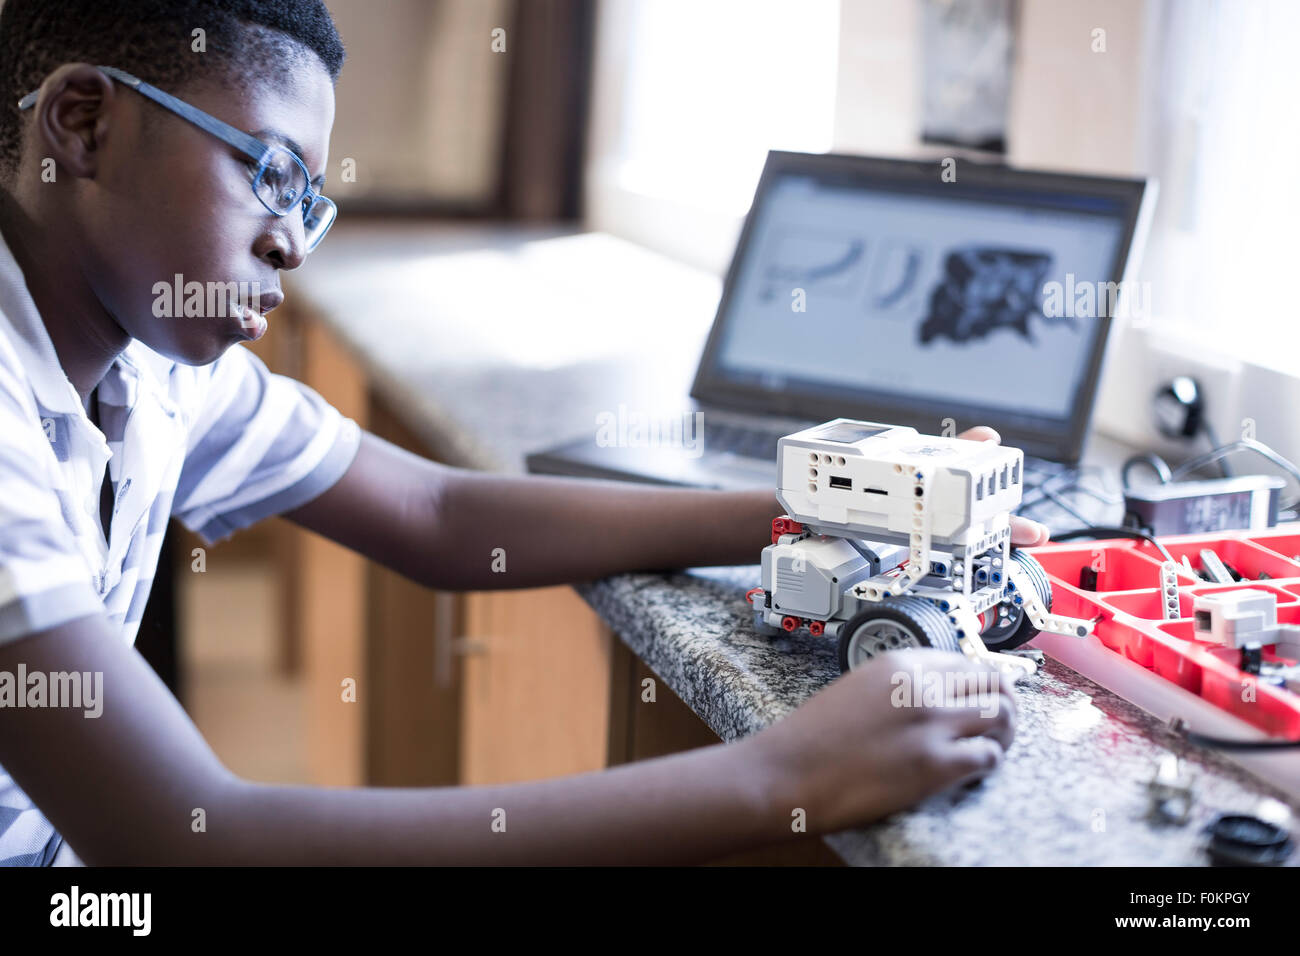 Schoolboy with laptop in robotics class - Stock Image